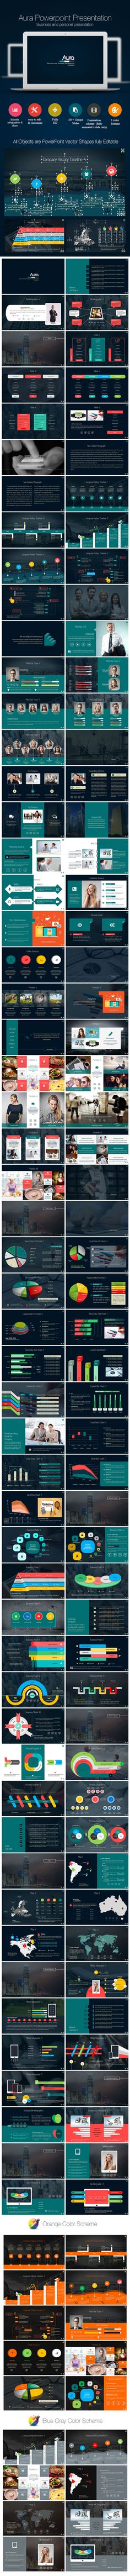 Aura Power Point Presentation Business PowerPoint Template. Download here: http://graphicriver.net/item/aura-power-point-presentation/9692292?s_rank=1792&ref=yinkira